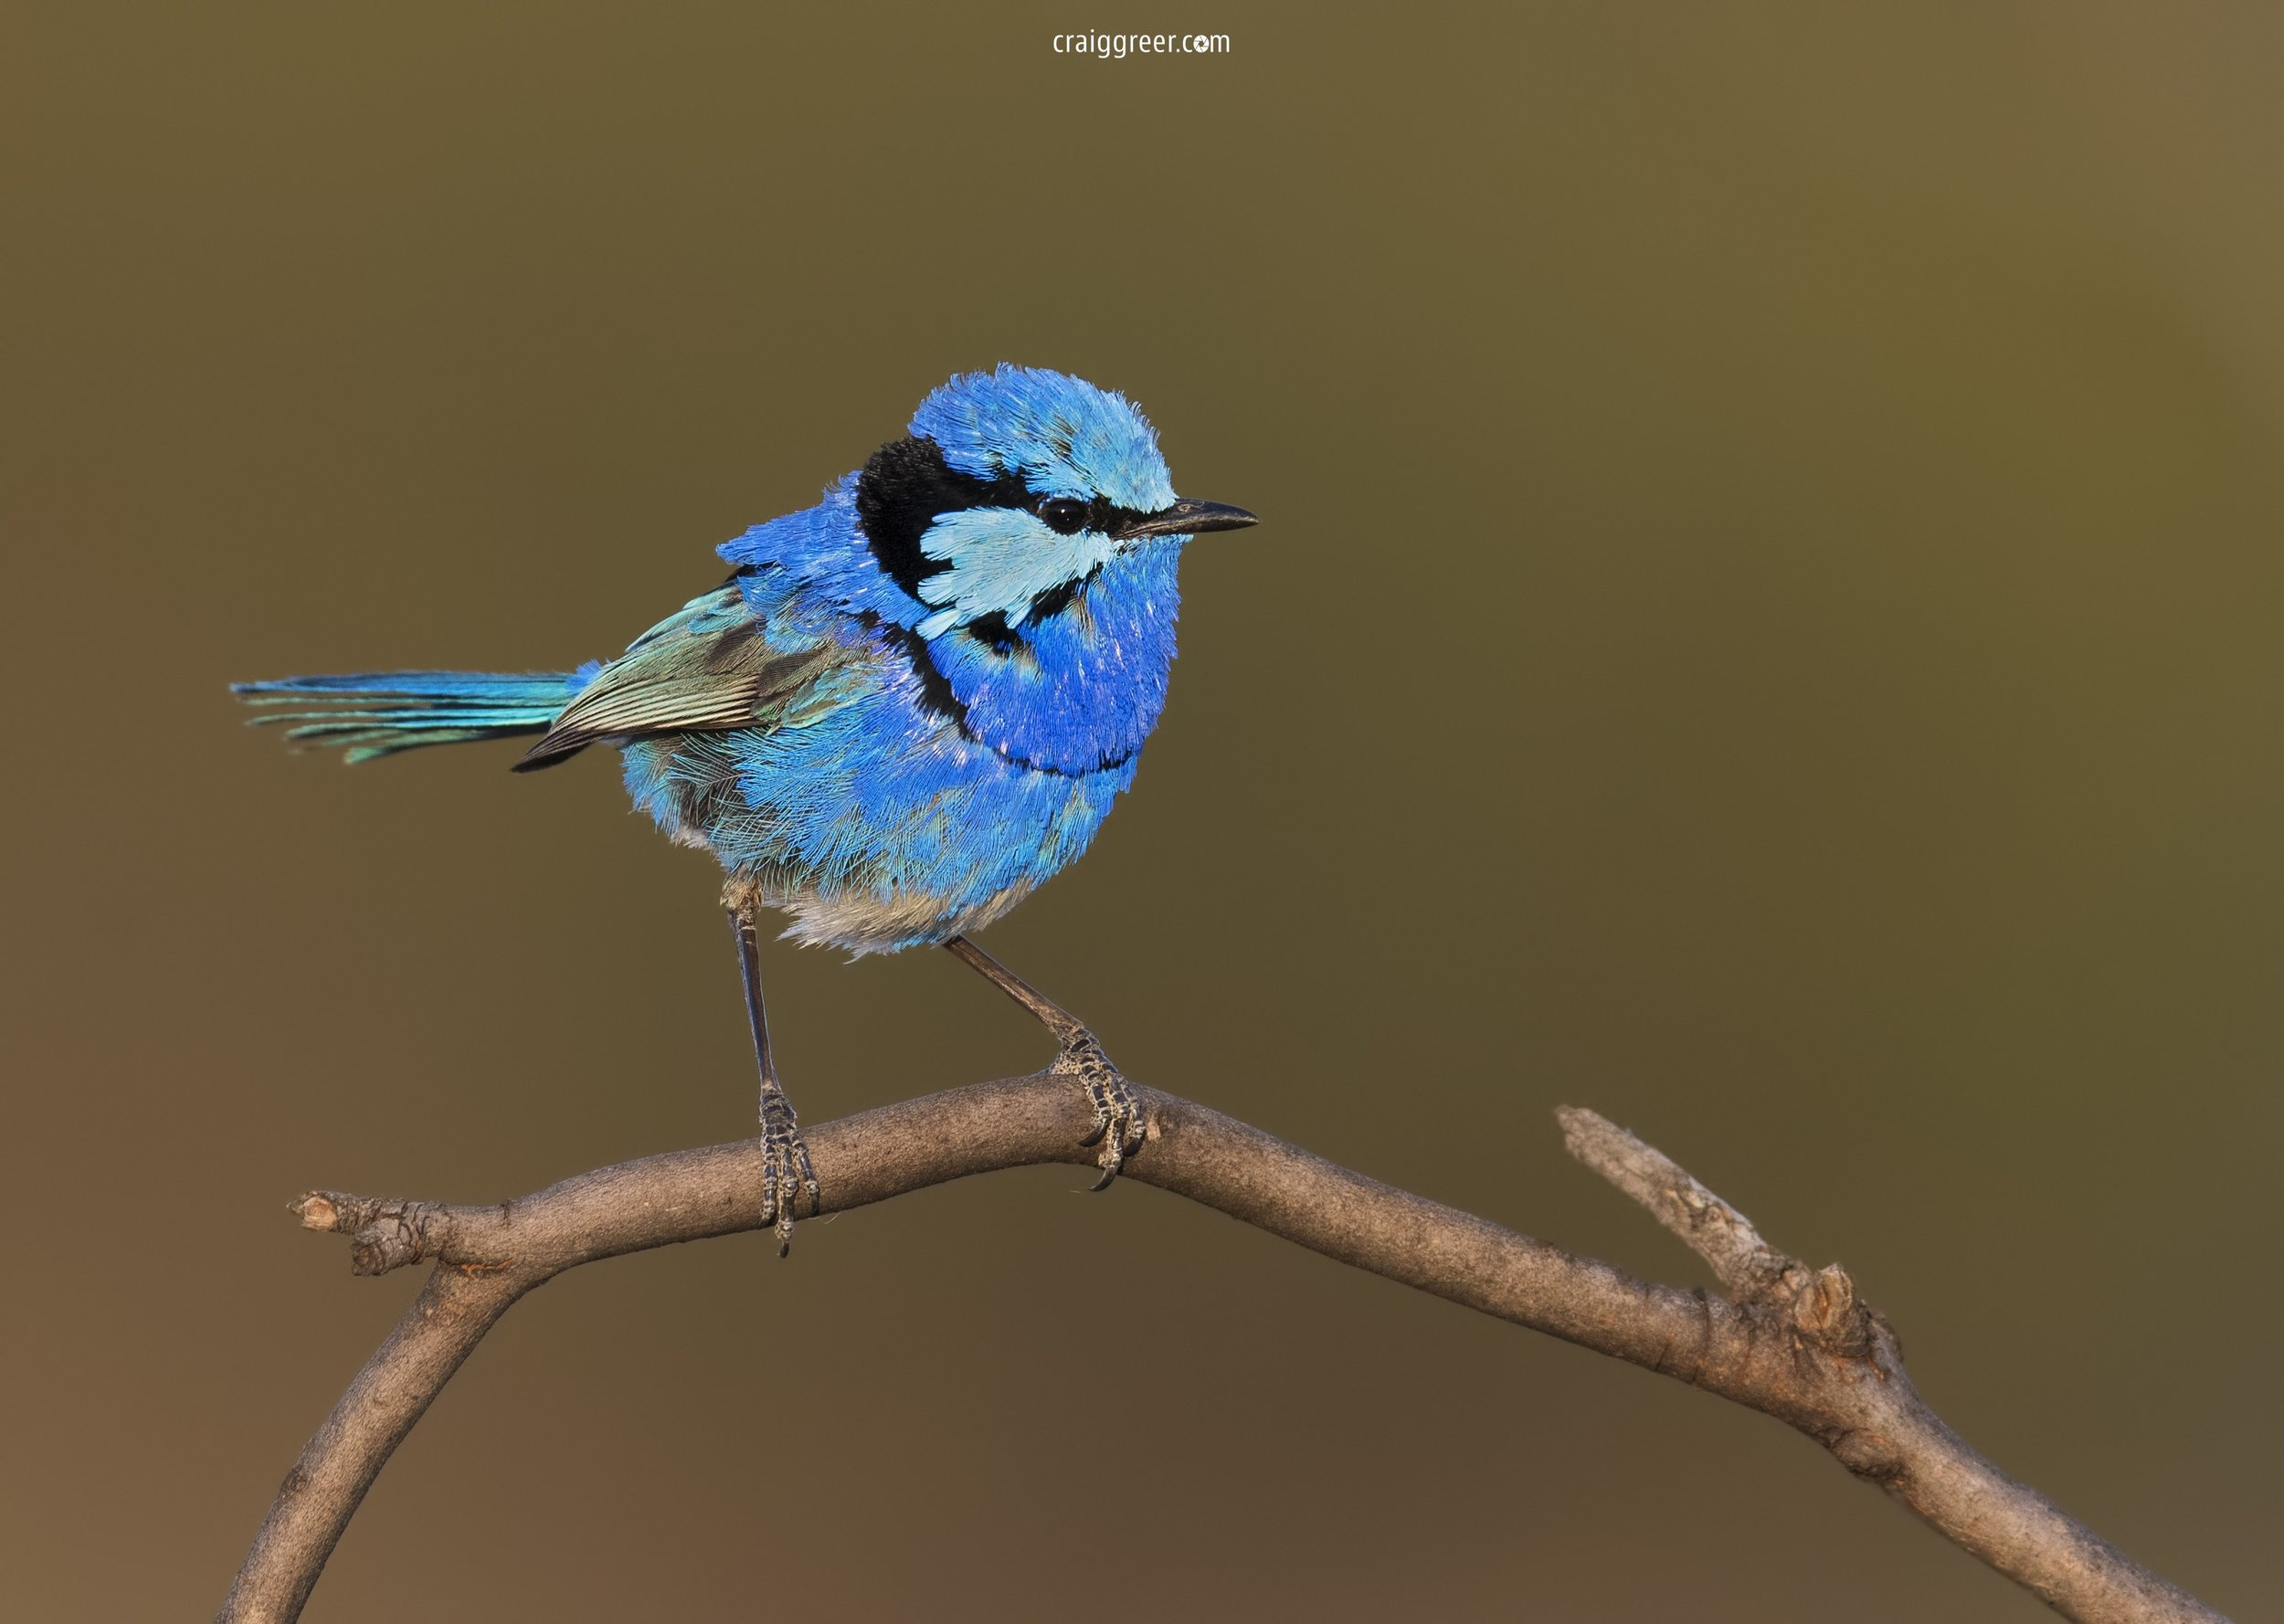 Splendid-Fairy-wren-Mt-Mary-16-12-17.jpg